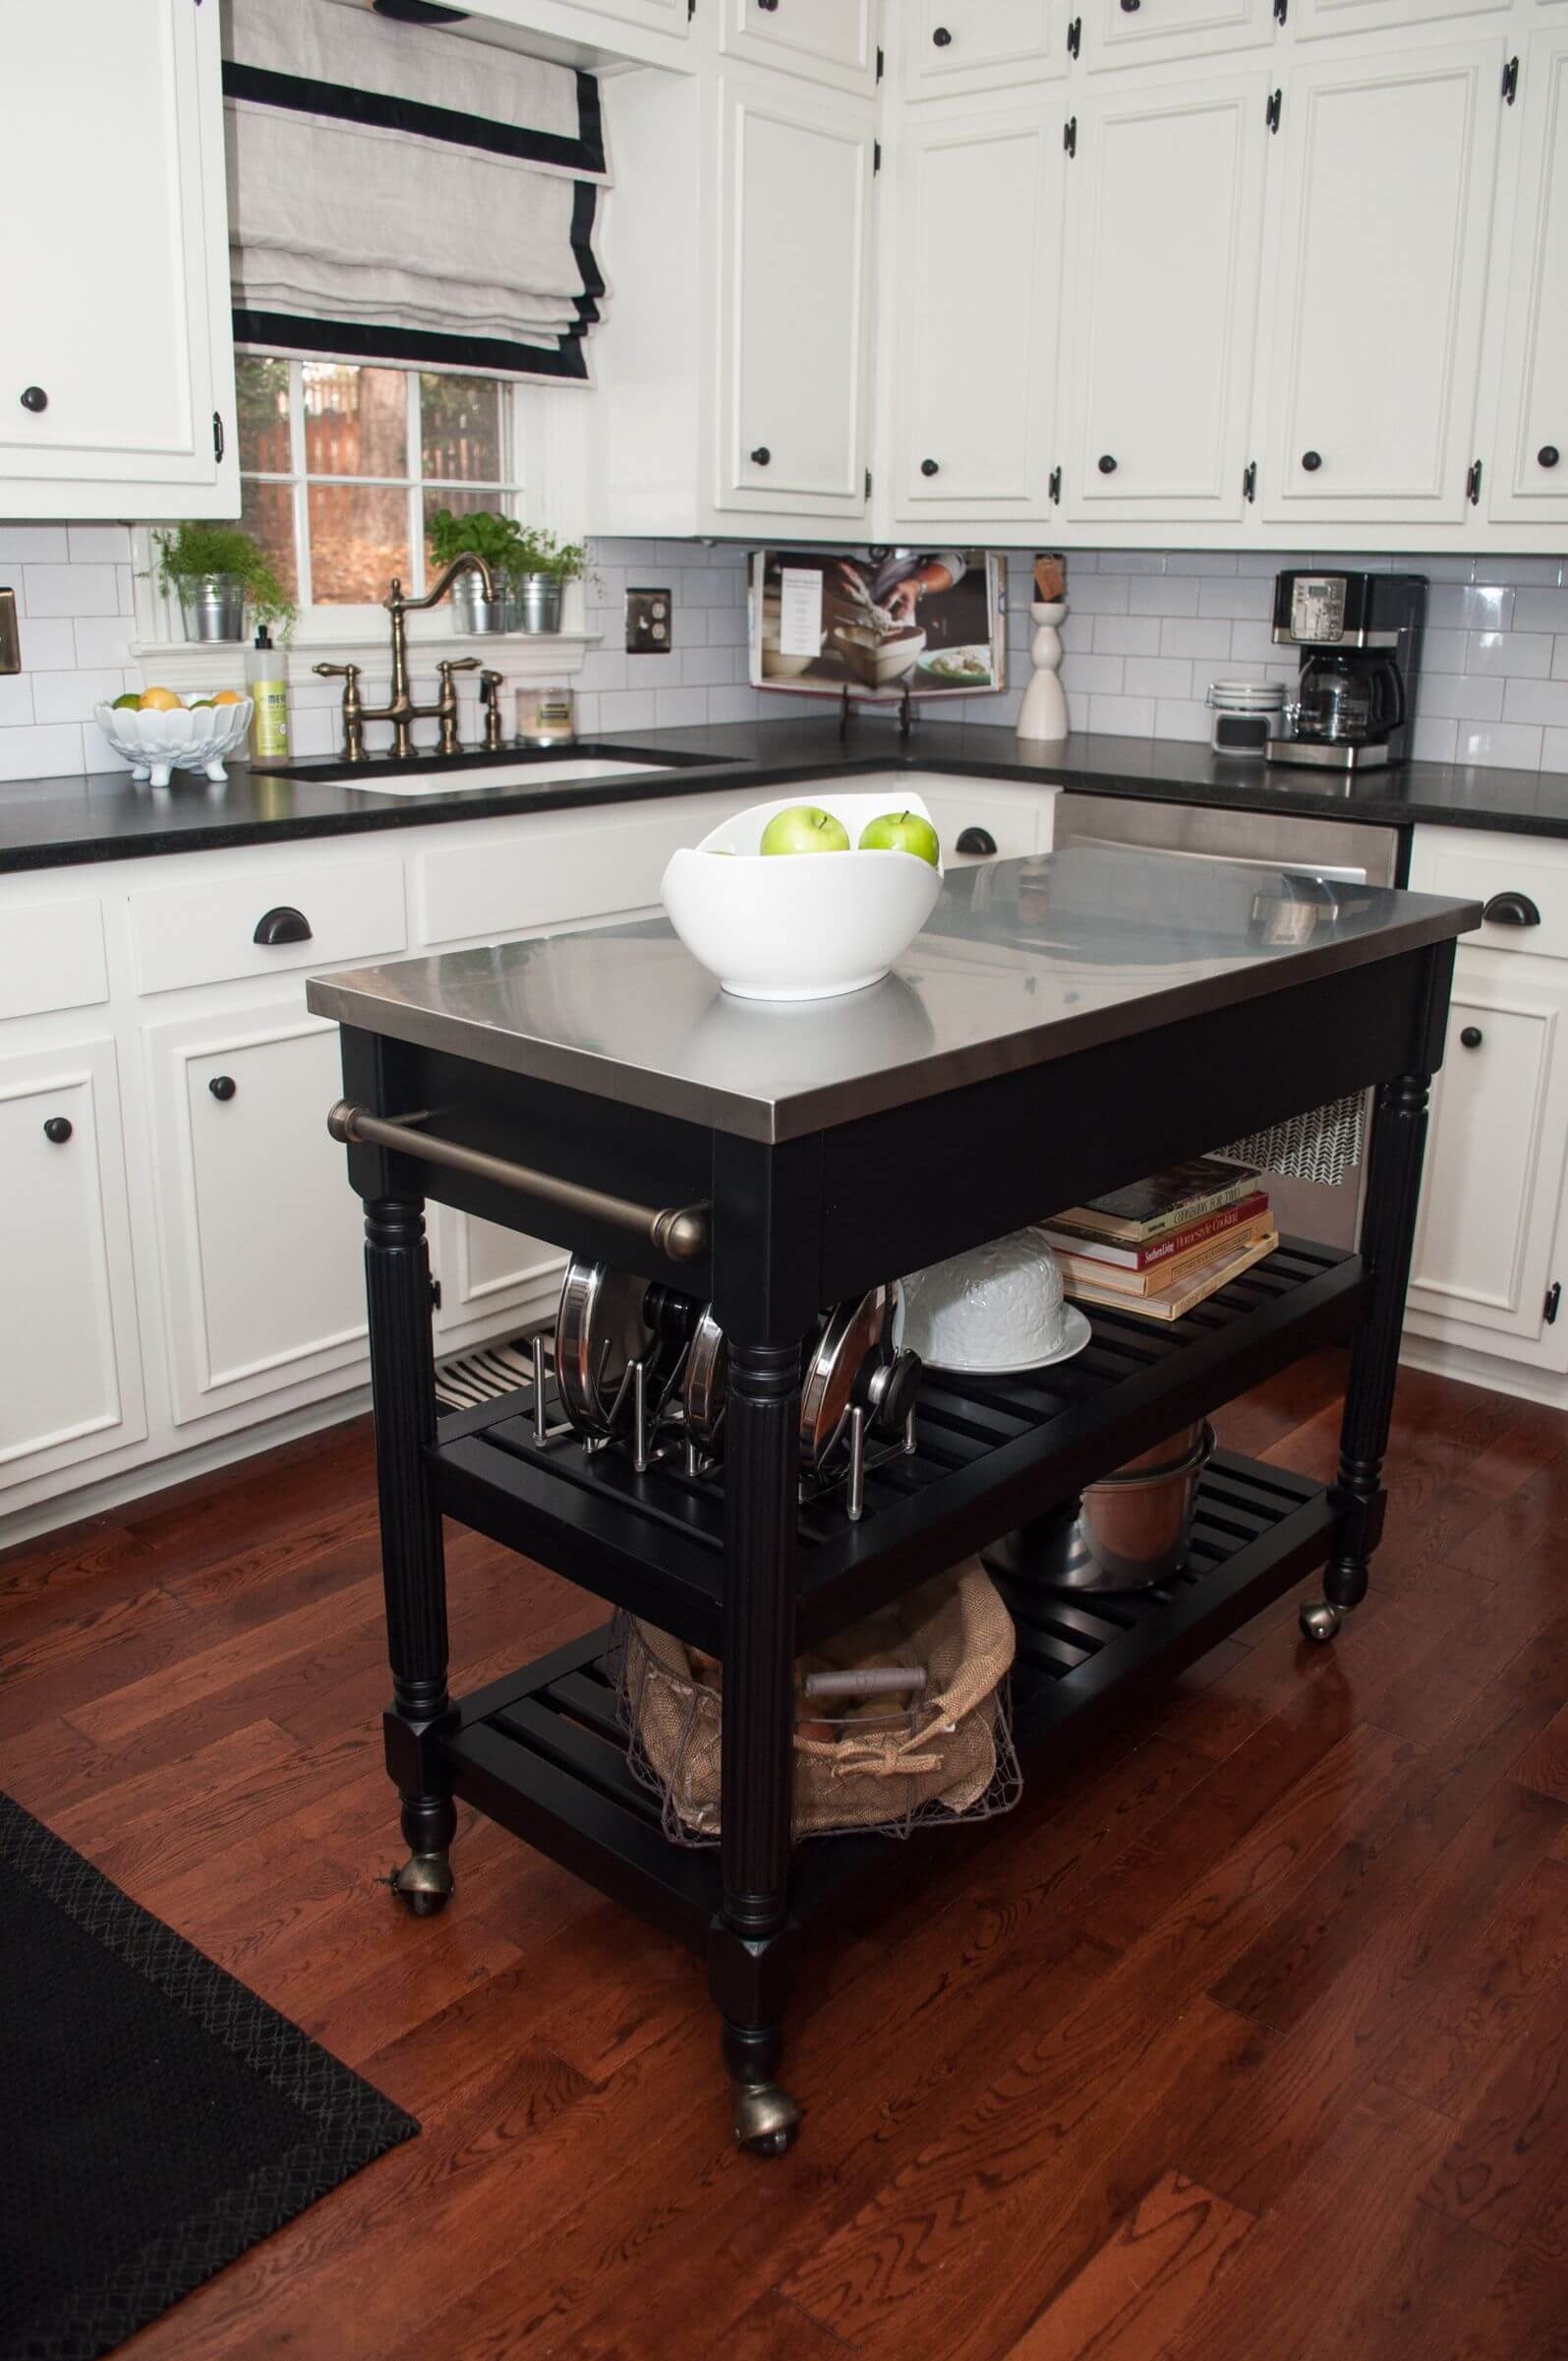 10 Types of Small Kitchen Islands & Carts on Wheels (2019)